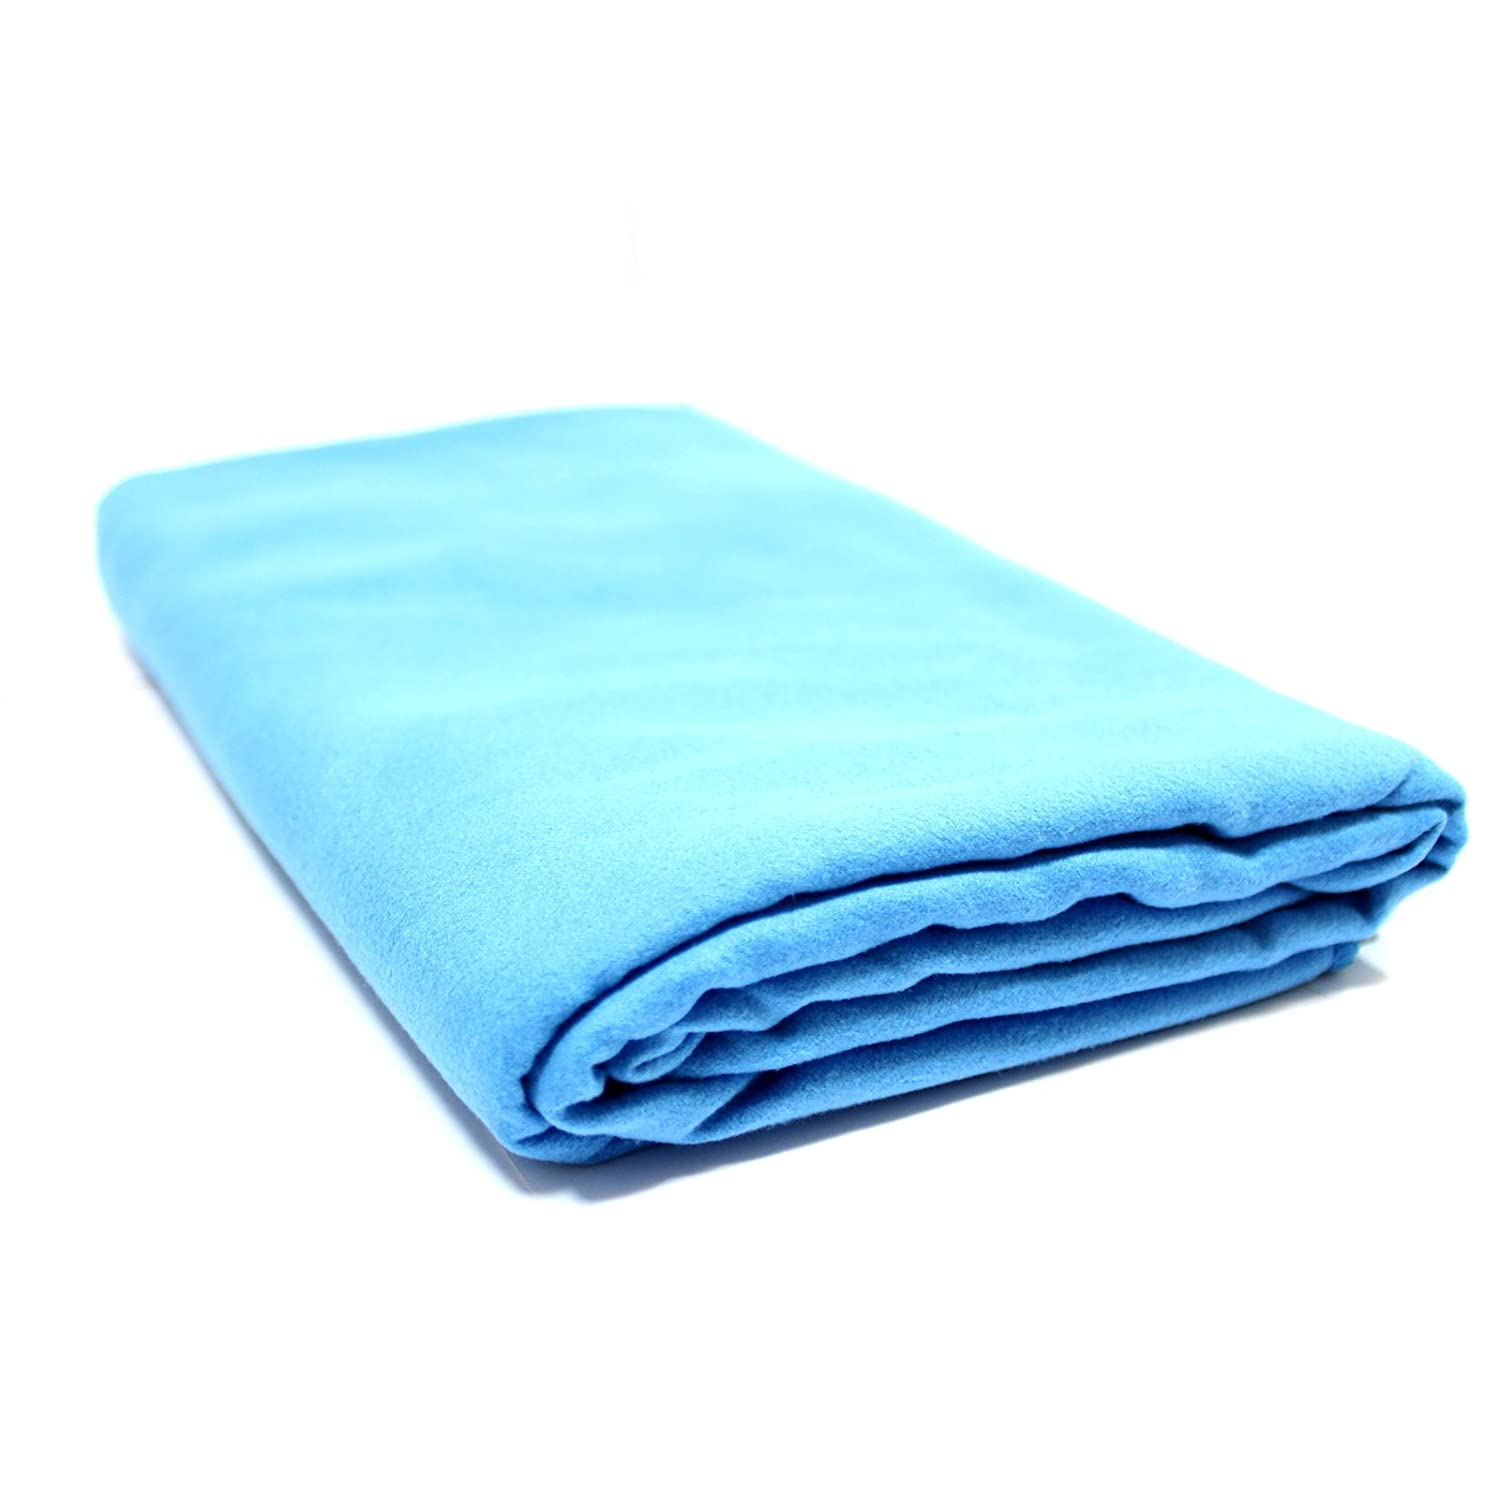 Camping /& Hiking Towel Ultra Absorbent 80x130cm Free Storage Bag With Medium /& Large Towels Beach /& Sports Lightweight Home /& Gym Quick Drying Microfiber Towel Travel Pukkr Blue Medium